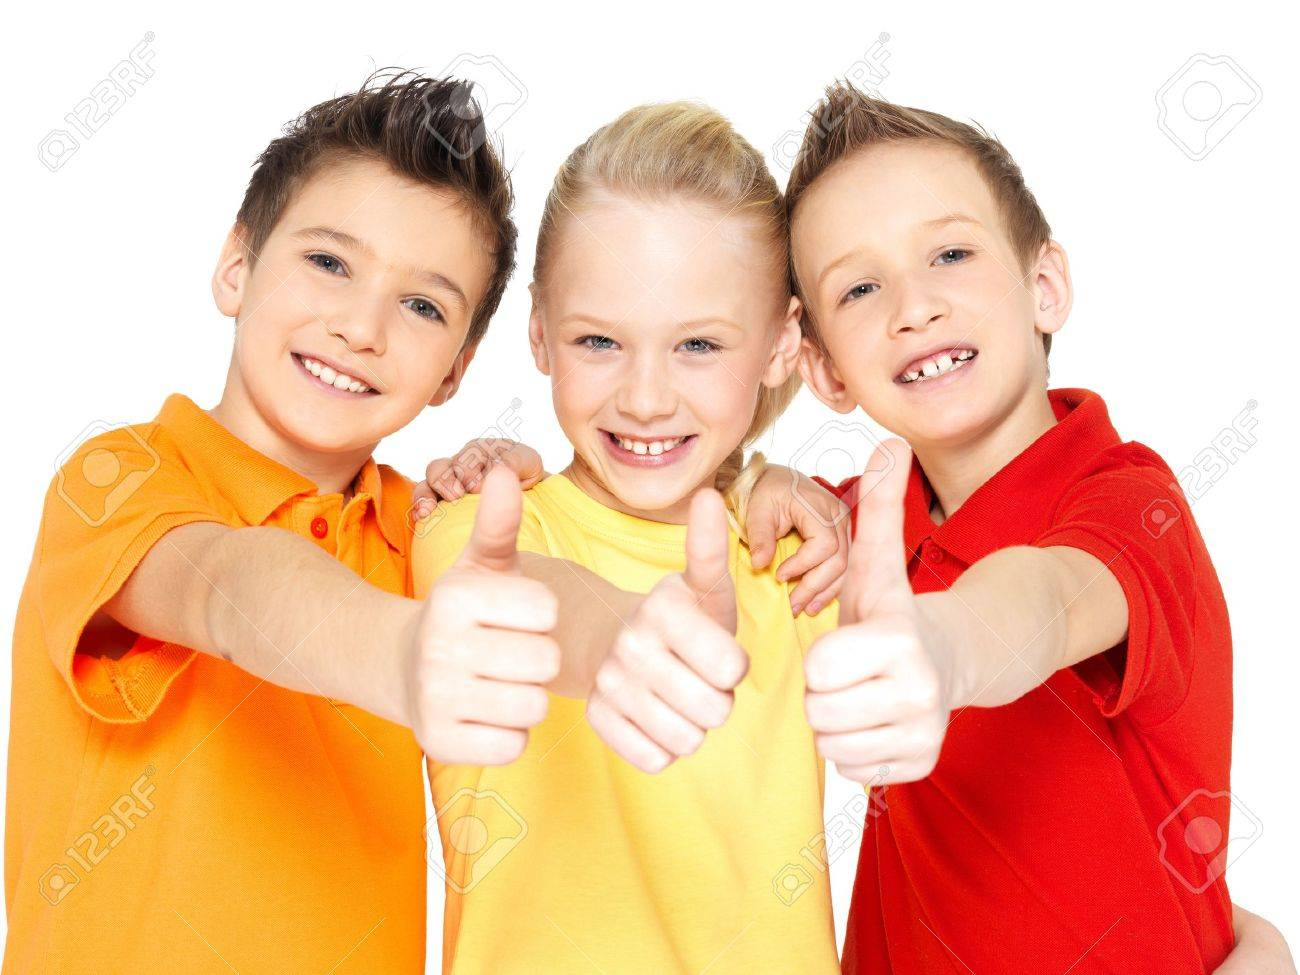 Portrait of the happy children with thumbs up gesture  isolated on white. Stock Photo - 17853726